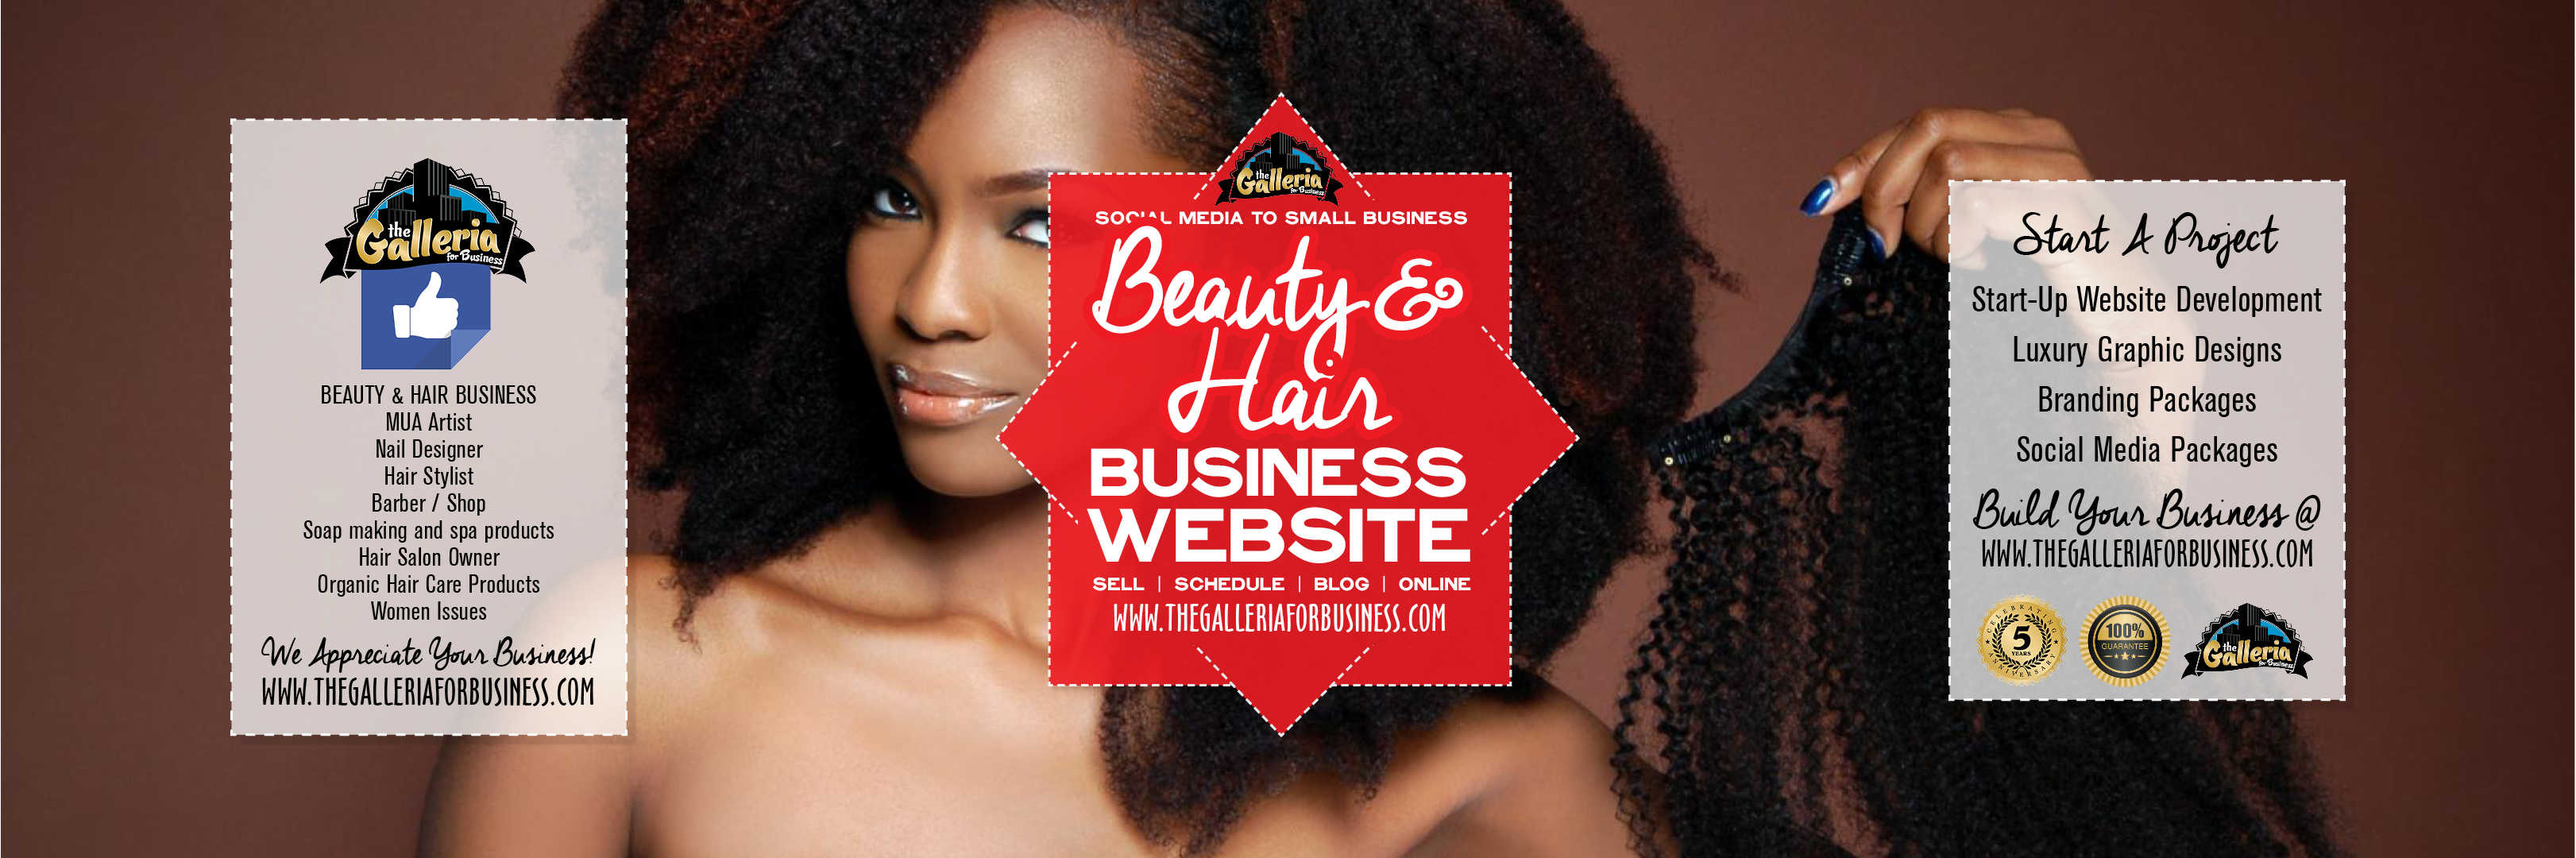 Beauty & Hair Business